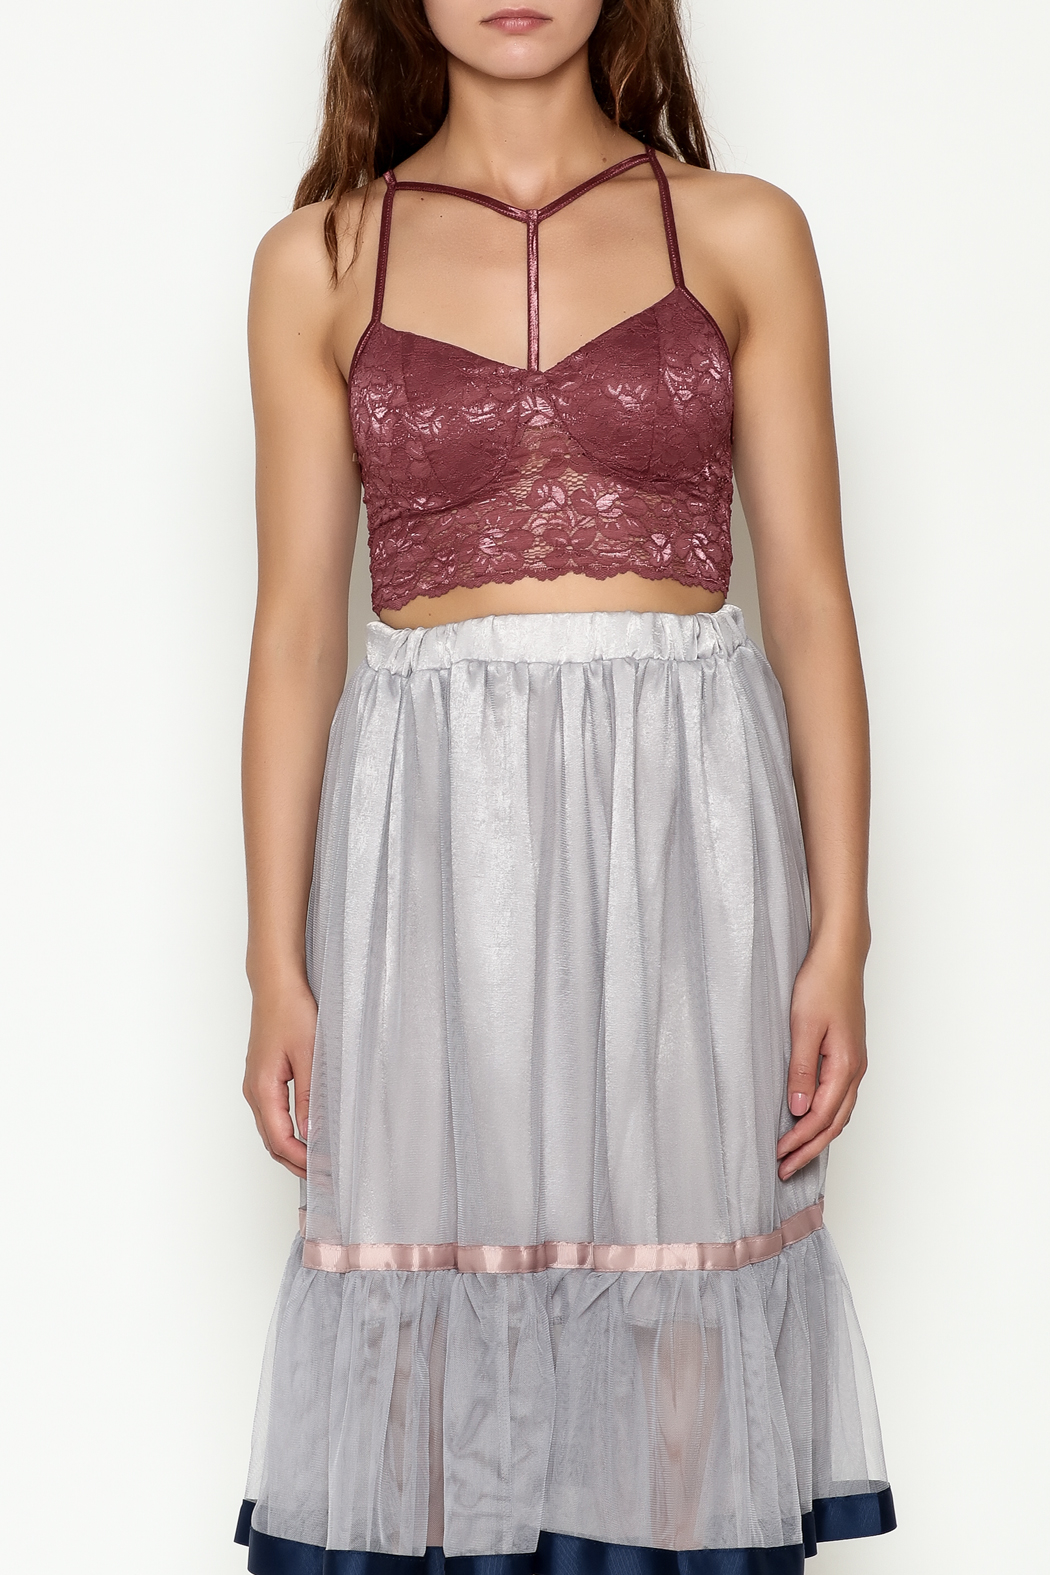 Bozzolo Lace Strap Bralette - Front Full Image